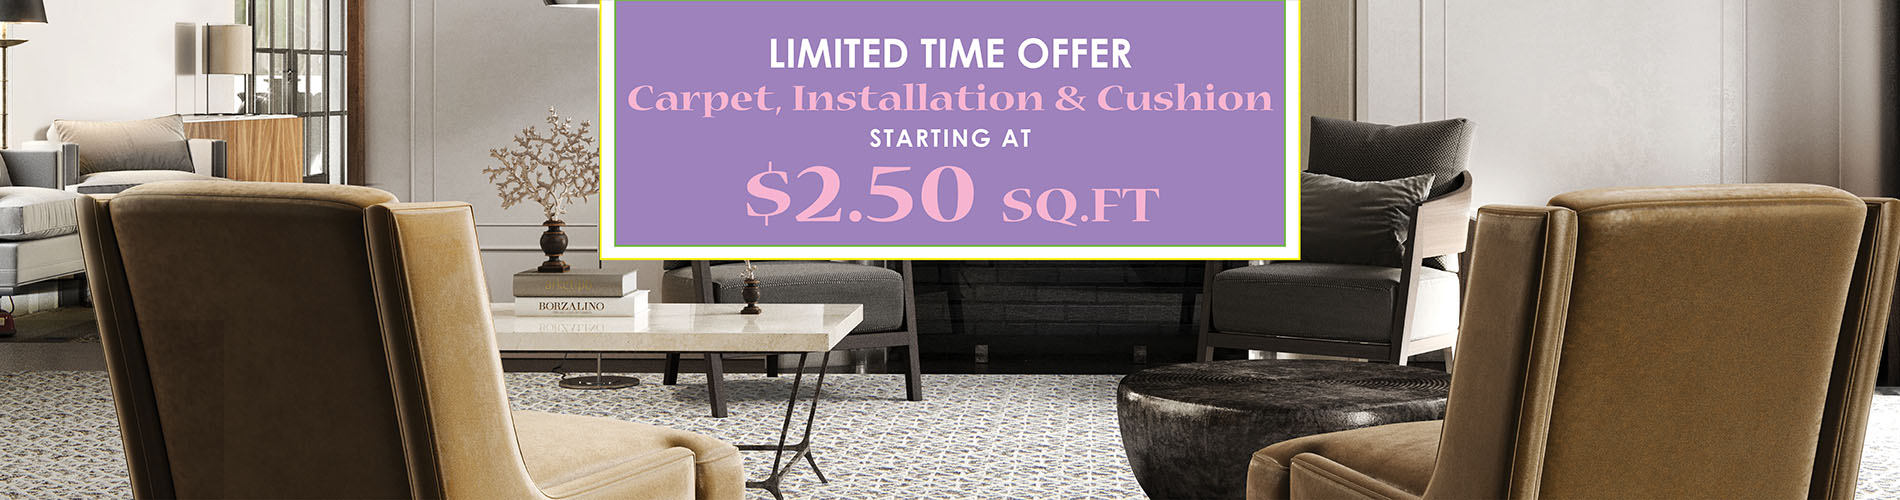 Limited Time Offer  Carpet, Installation & Cushion  Starting at $2.50 sq.ft.